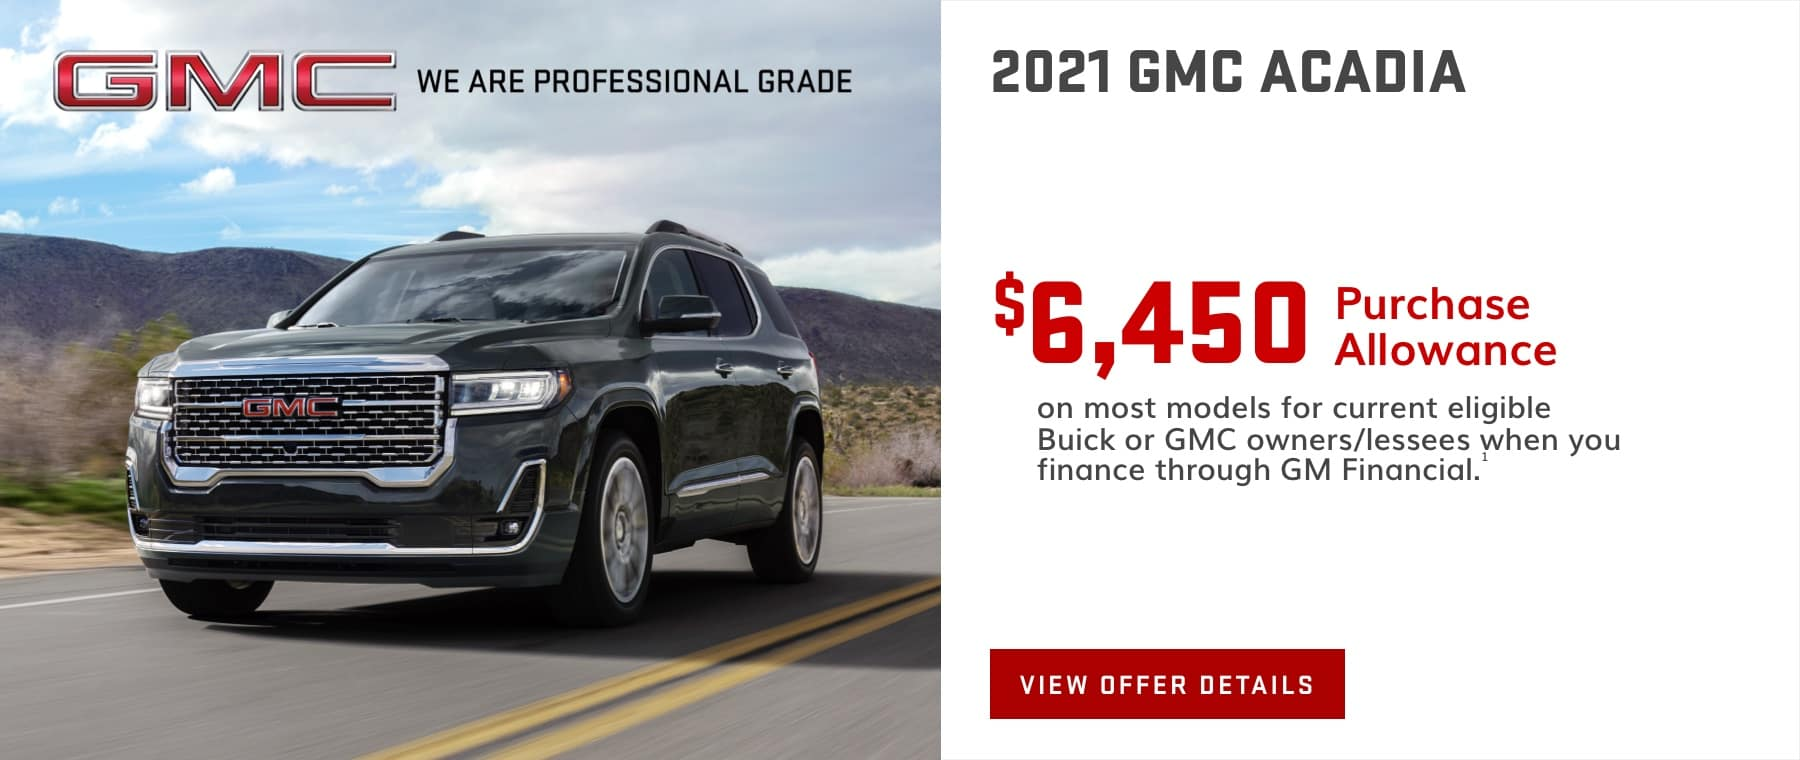 $6,450 Purchase Allowance on most models for current eligible Buick or GMC owners/lessees when you finance through GM Financial.1